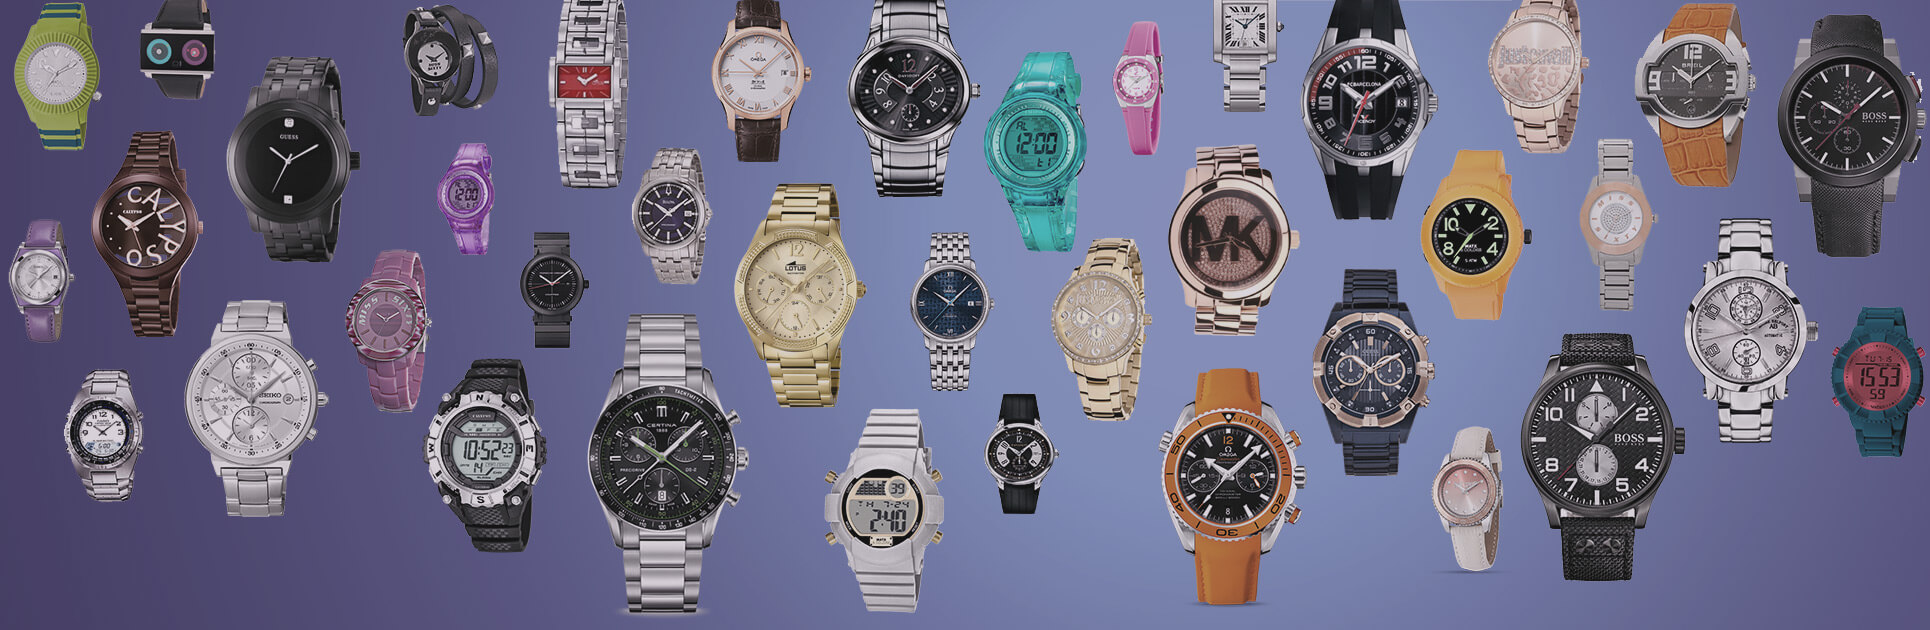 NEW SECTION: WATCHES